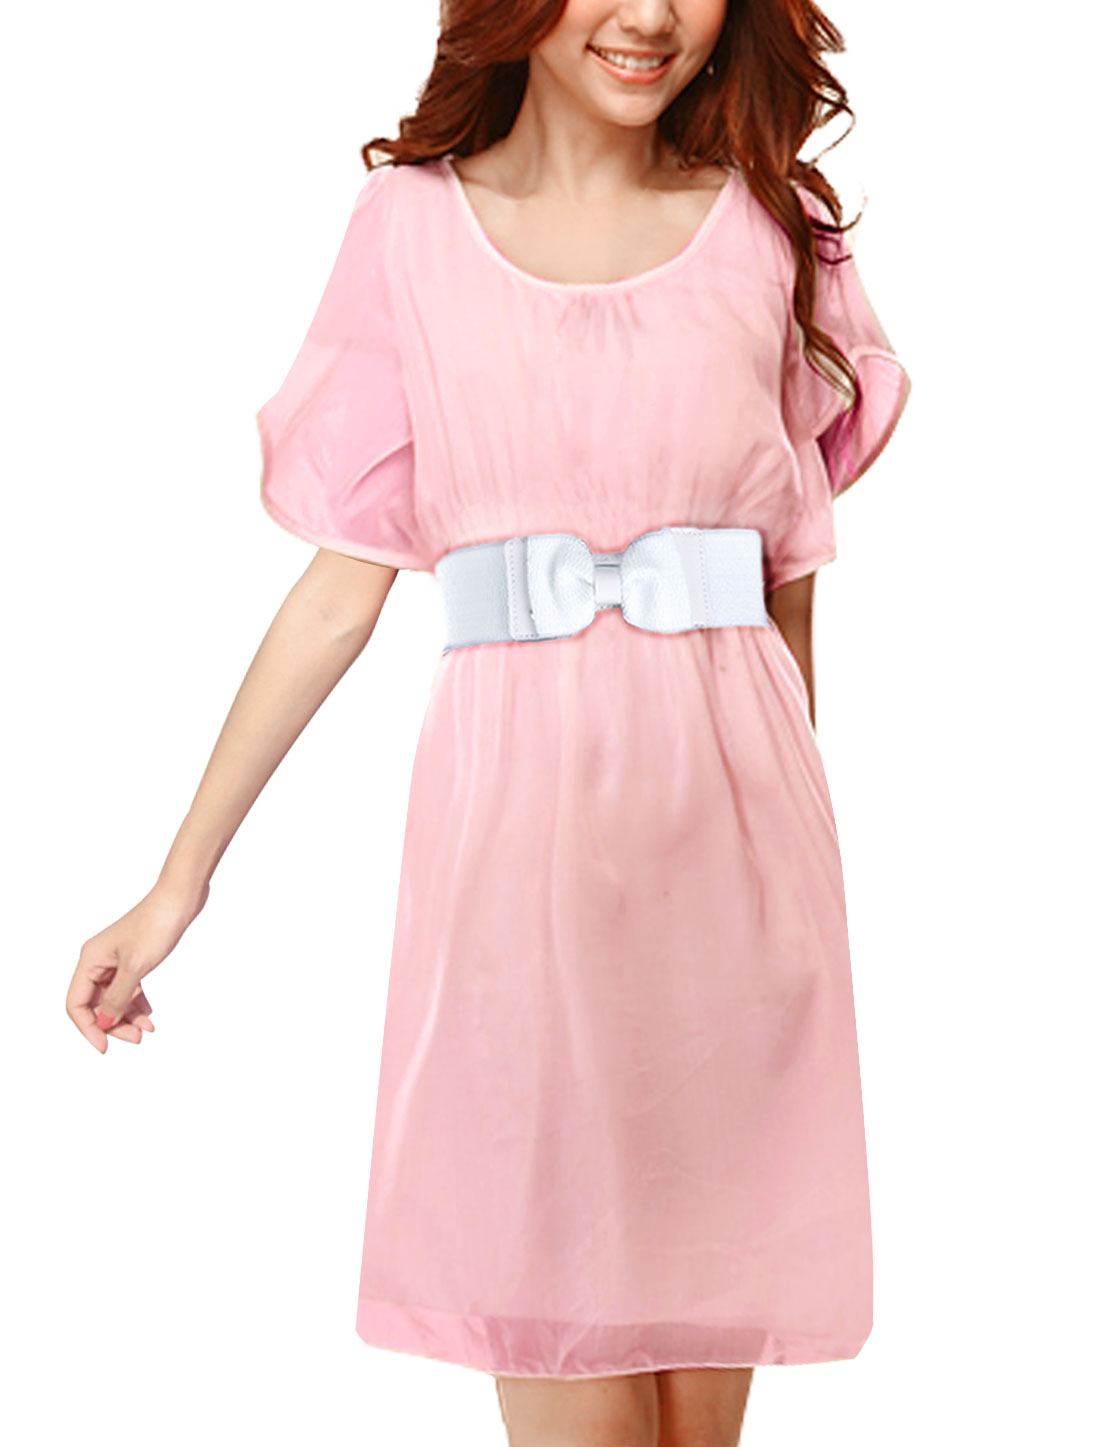 Woman Chic Scoop Neck Short Ruffled Sleeve Pink Belted Mini Dress M